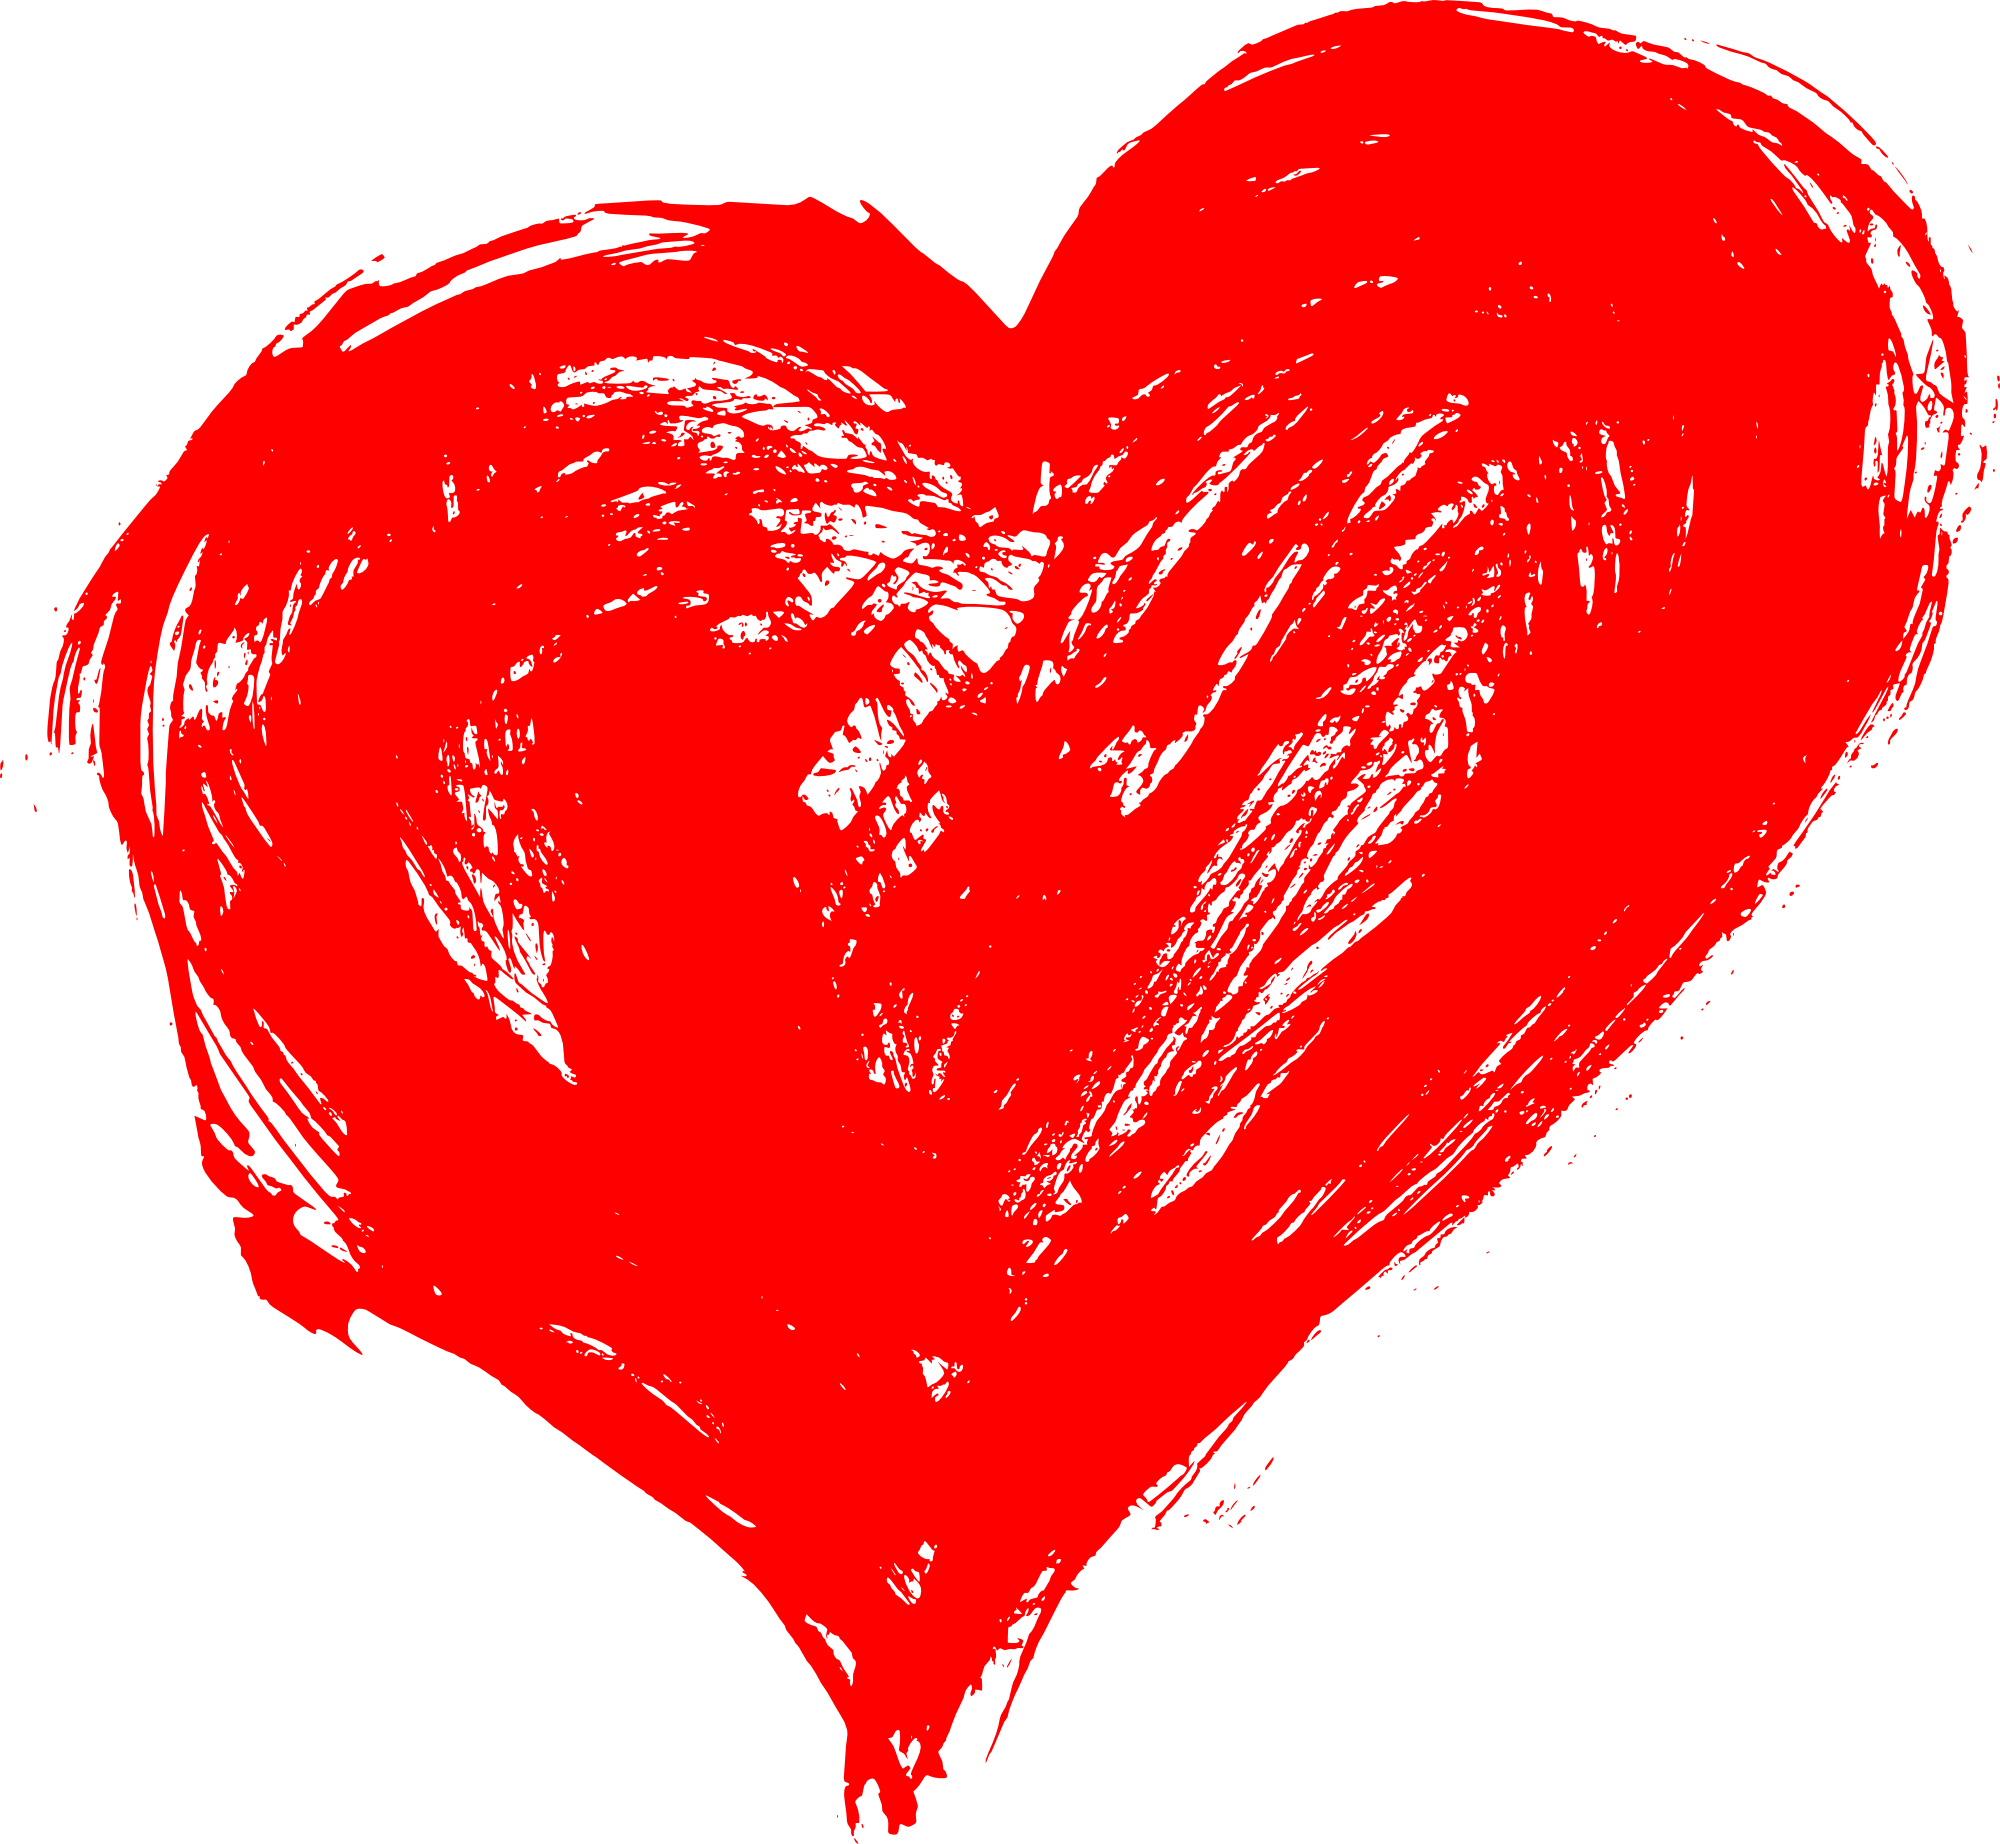 Hearts clipart hand drawn. Heart png transparent onlygfx